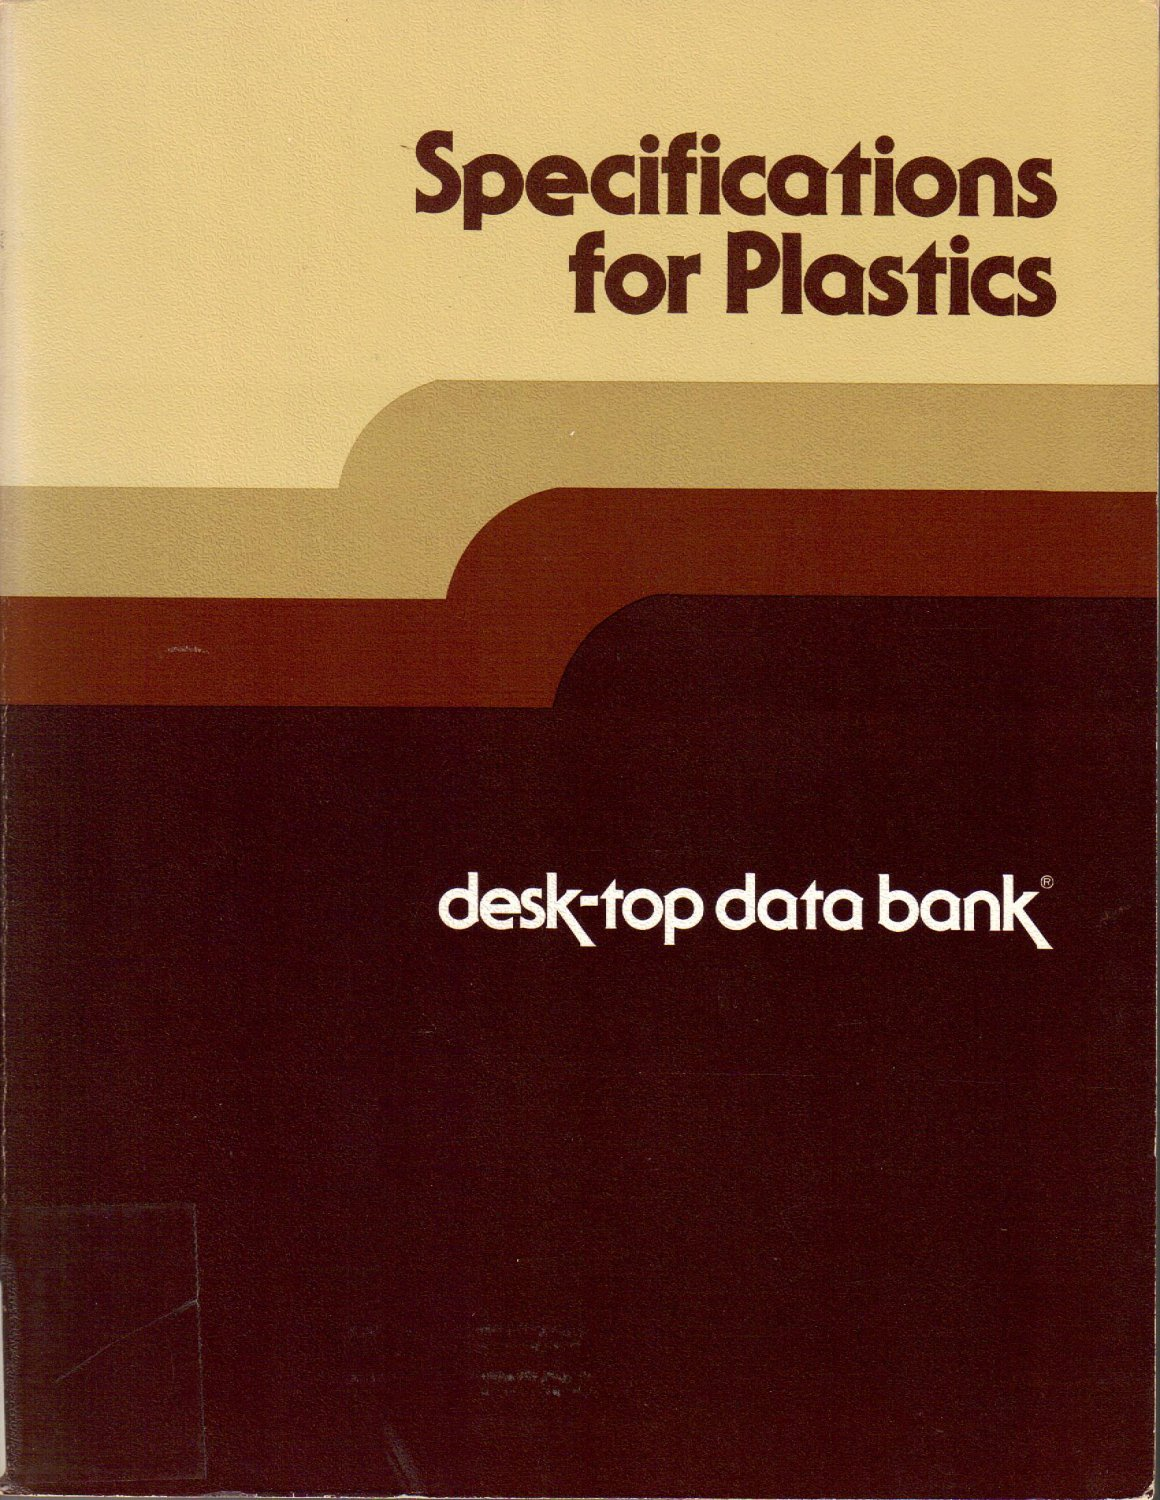 SPECIFICATIONS FOR PLASTICS Specification standards Resins Elastomers DESK-TOP DATA BANK 1978